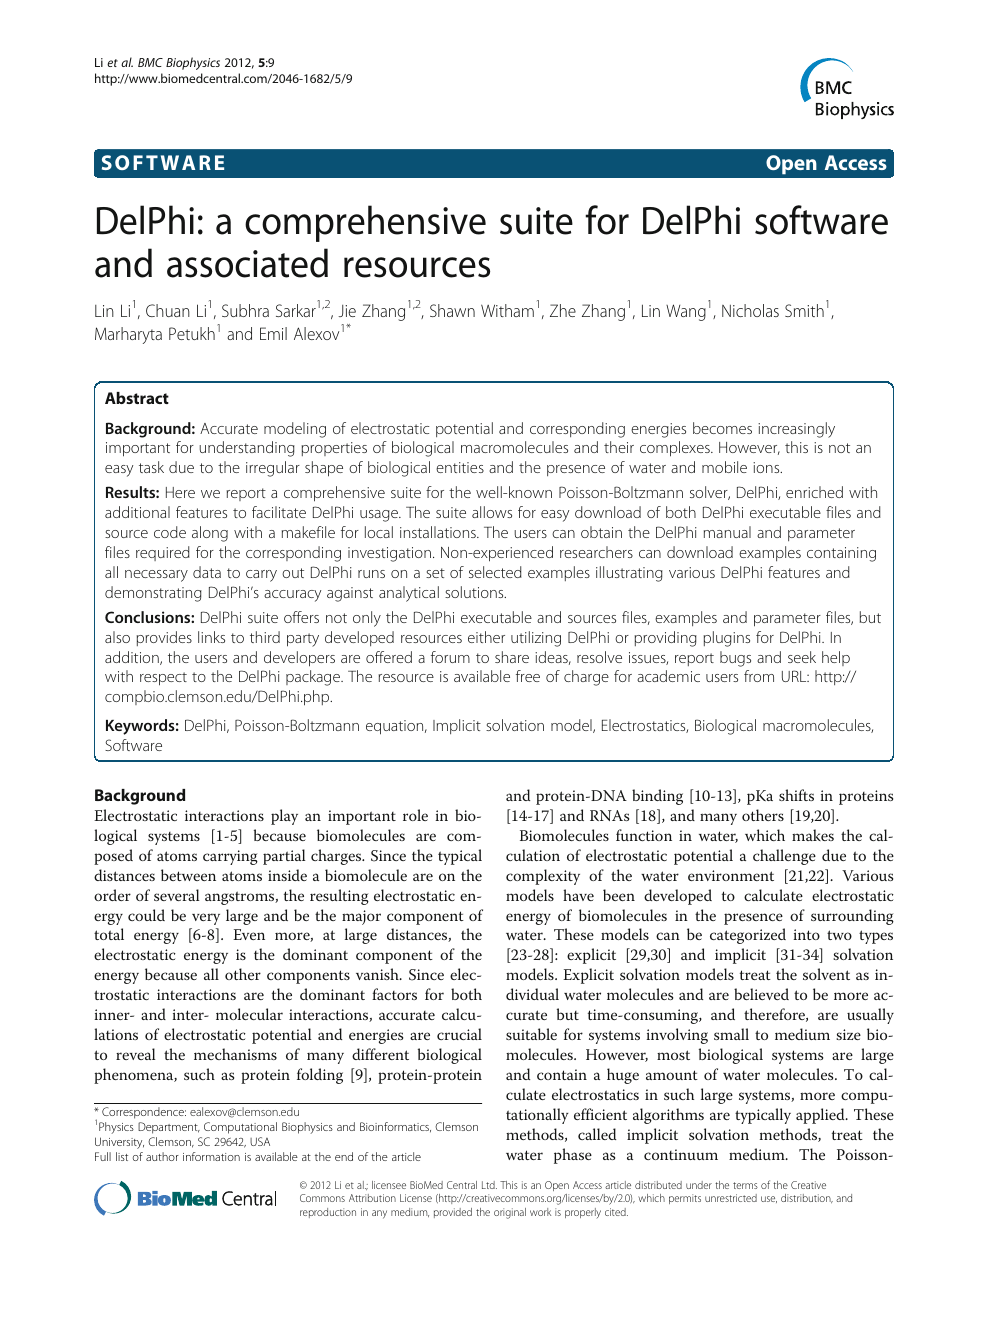 DelPhi: a comprehensive suite for DelPhi software and